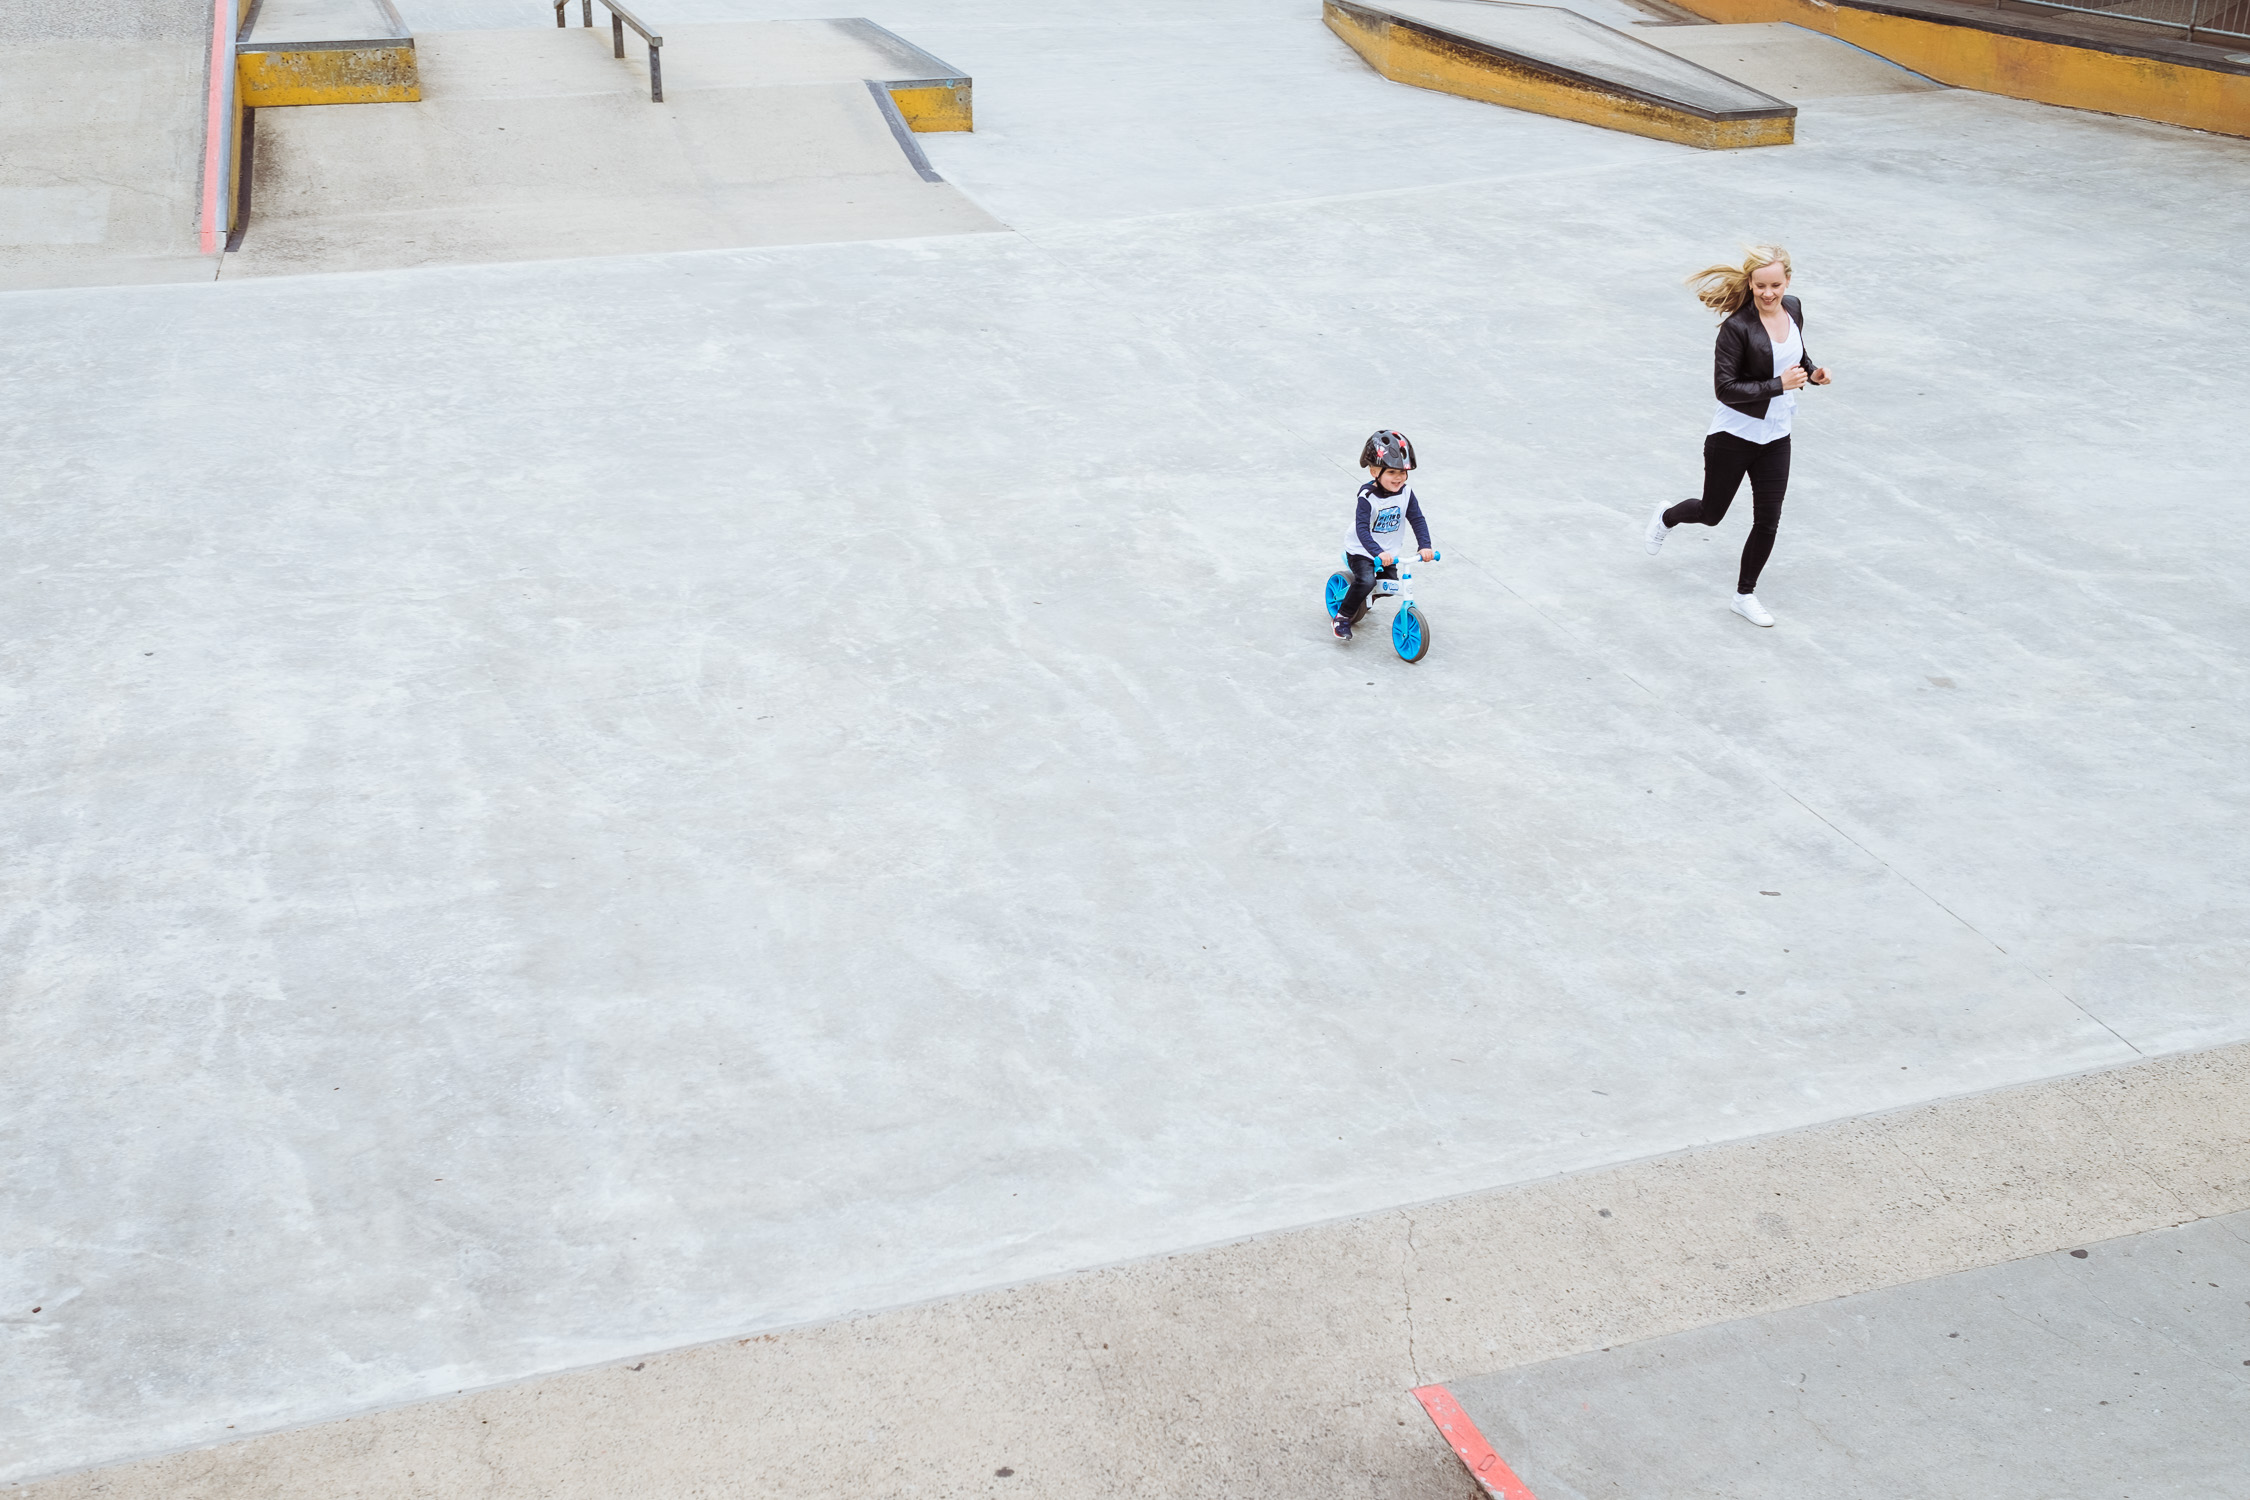 Day In The Life - mum and toddler in skate park